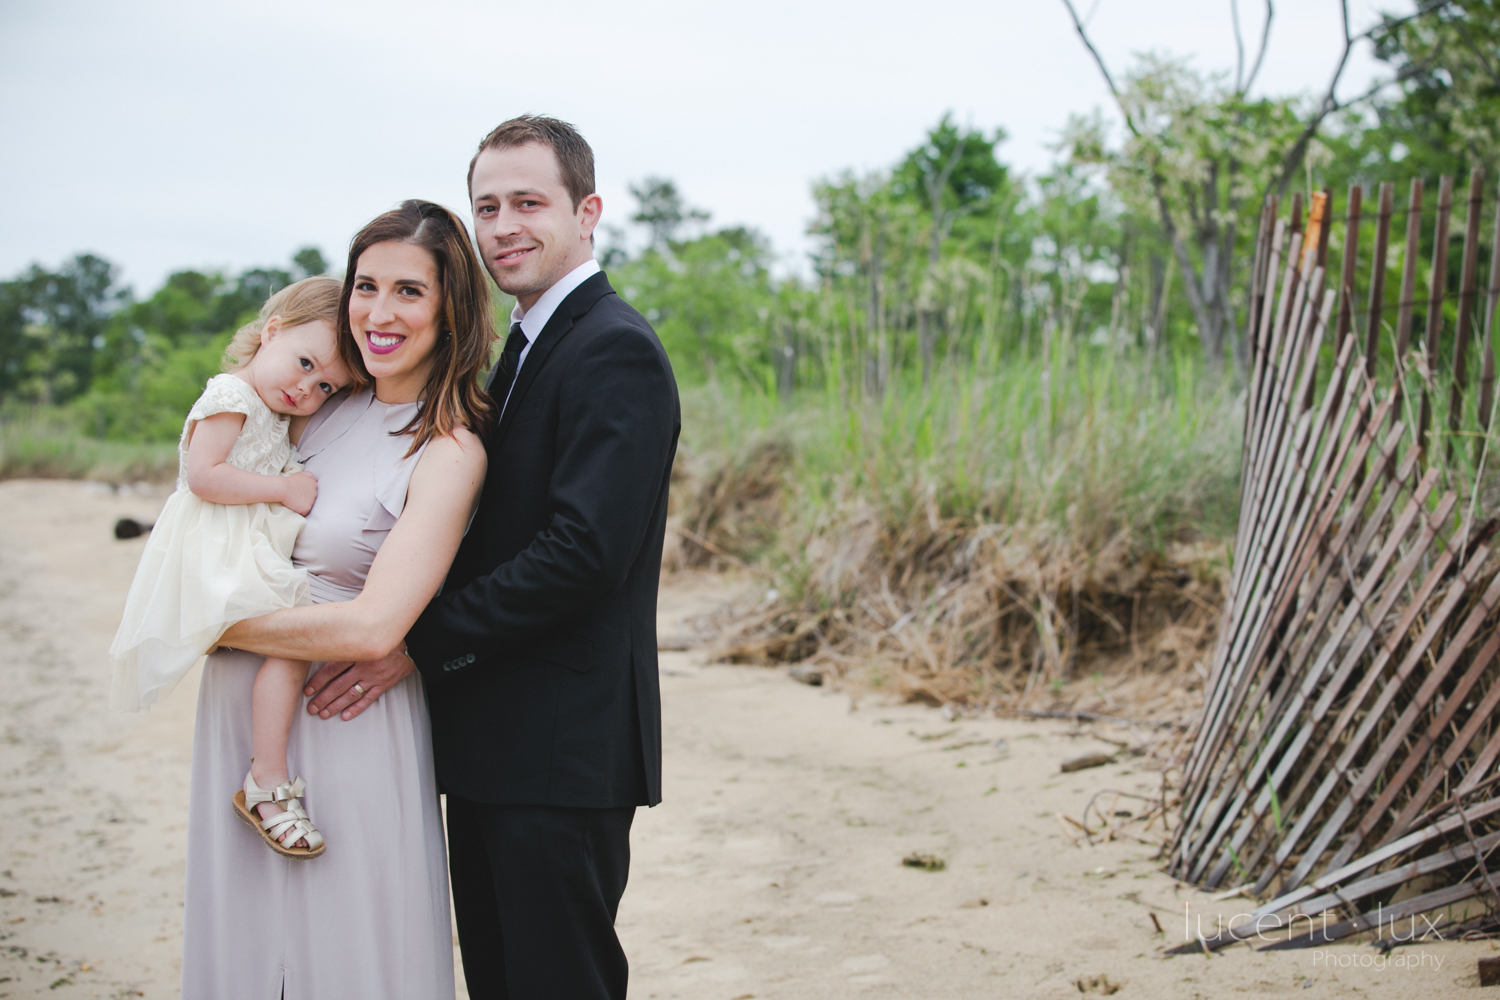 Maternity_Portrait_Photography_Terrapin_Beach_Park_Maryland_Baltimore_Photographer-111.jpg